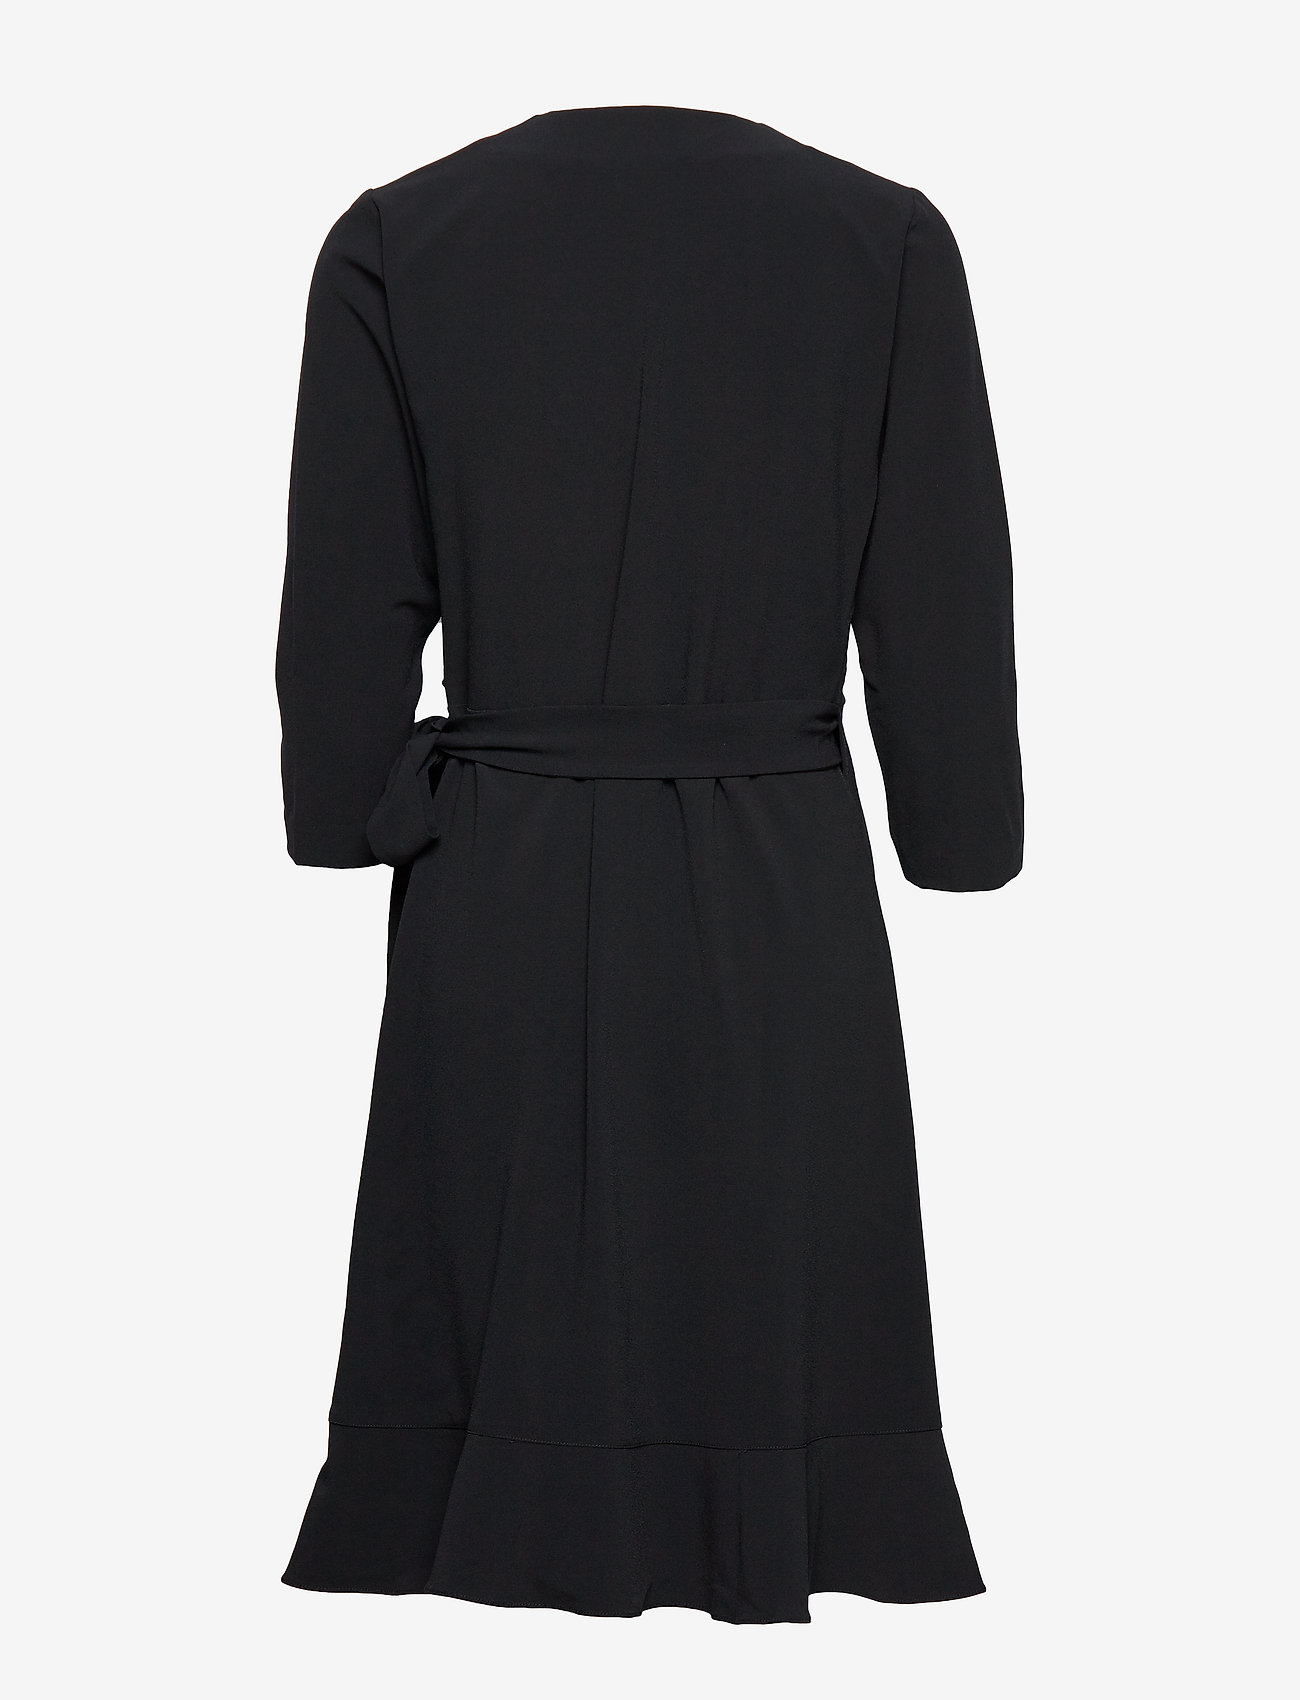 2NDDAY - 2ND Elly - robes portefeuille - black - 1